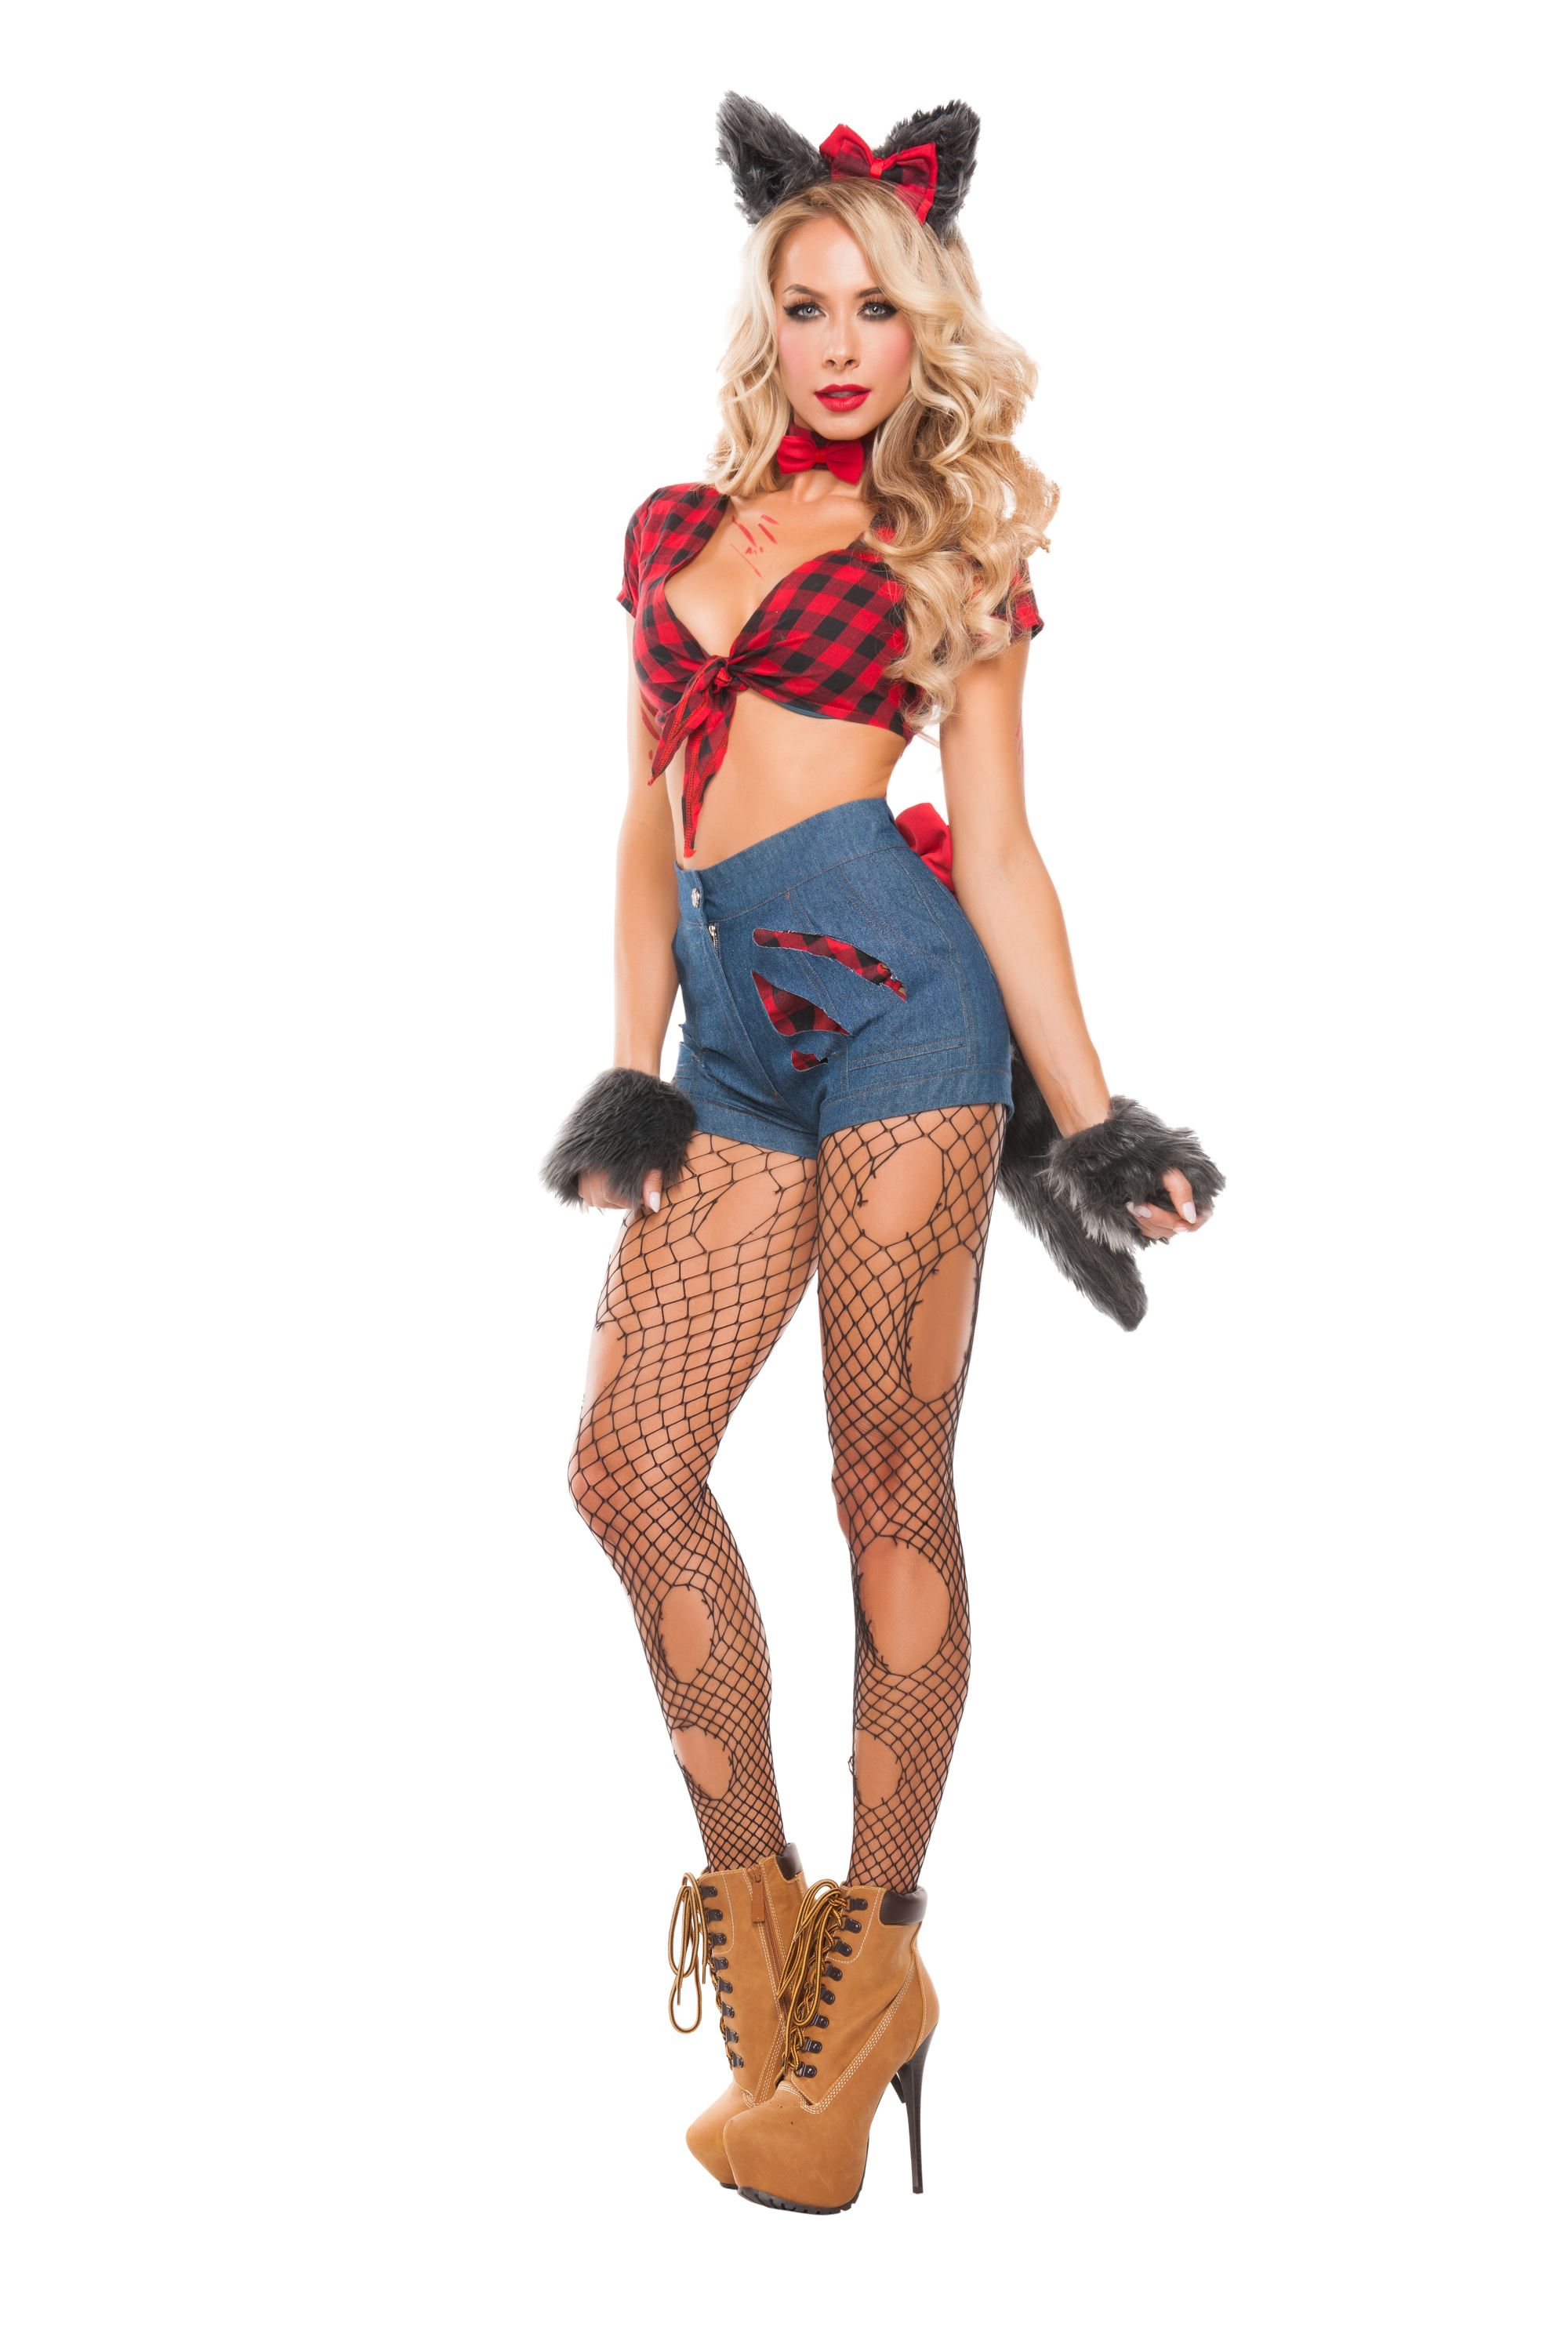 Shop Target for Girls' Halloween Costumes you will love at great low prices. Free shipping & returns or free same-day pick-up in store.